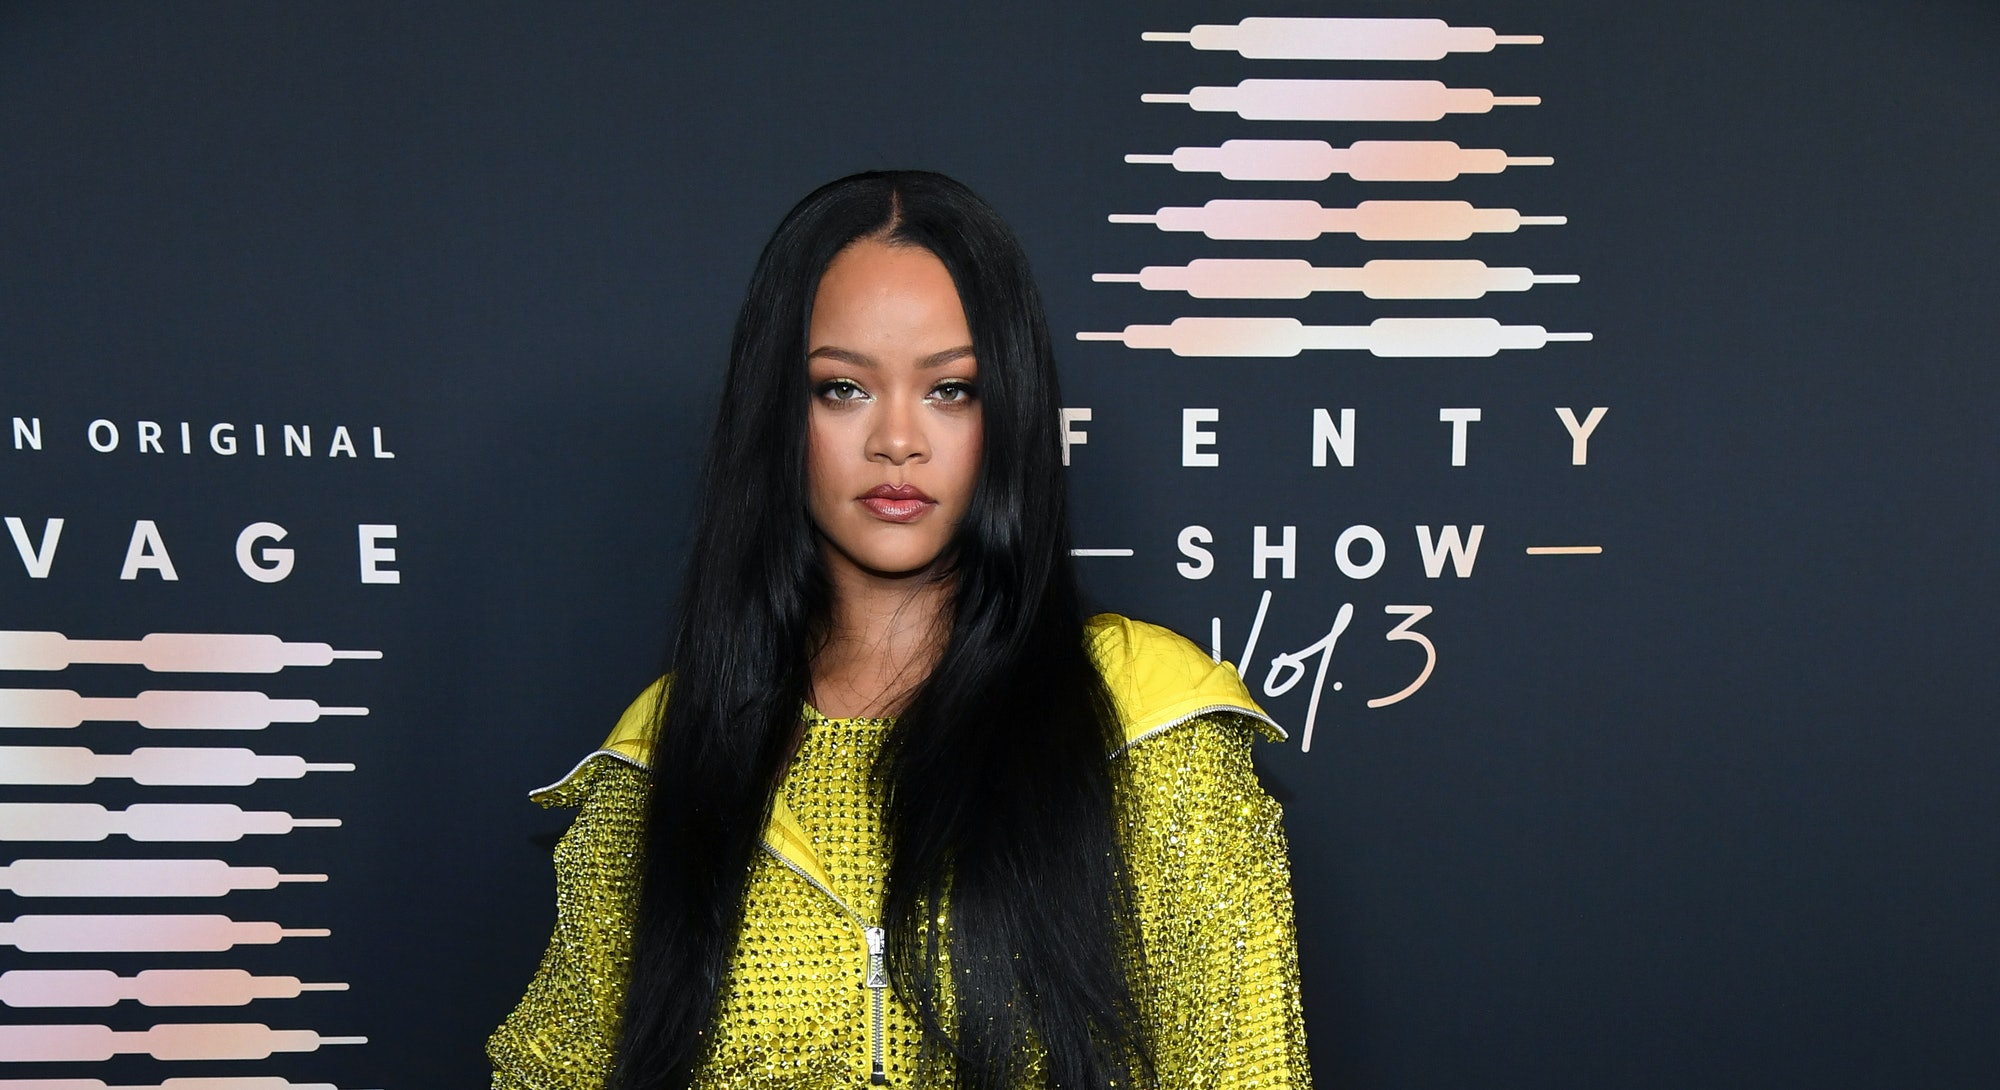 LOS ANGELES, CALIFORNIA - SEPTEMBER 22: In this image released on September 22, Rihanna attends Riha...